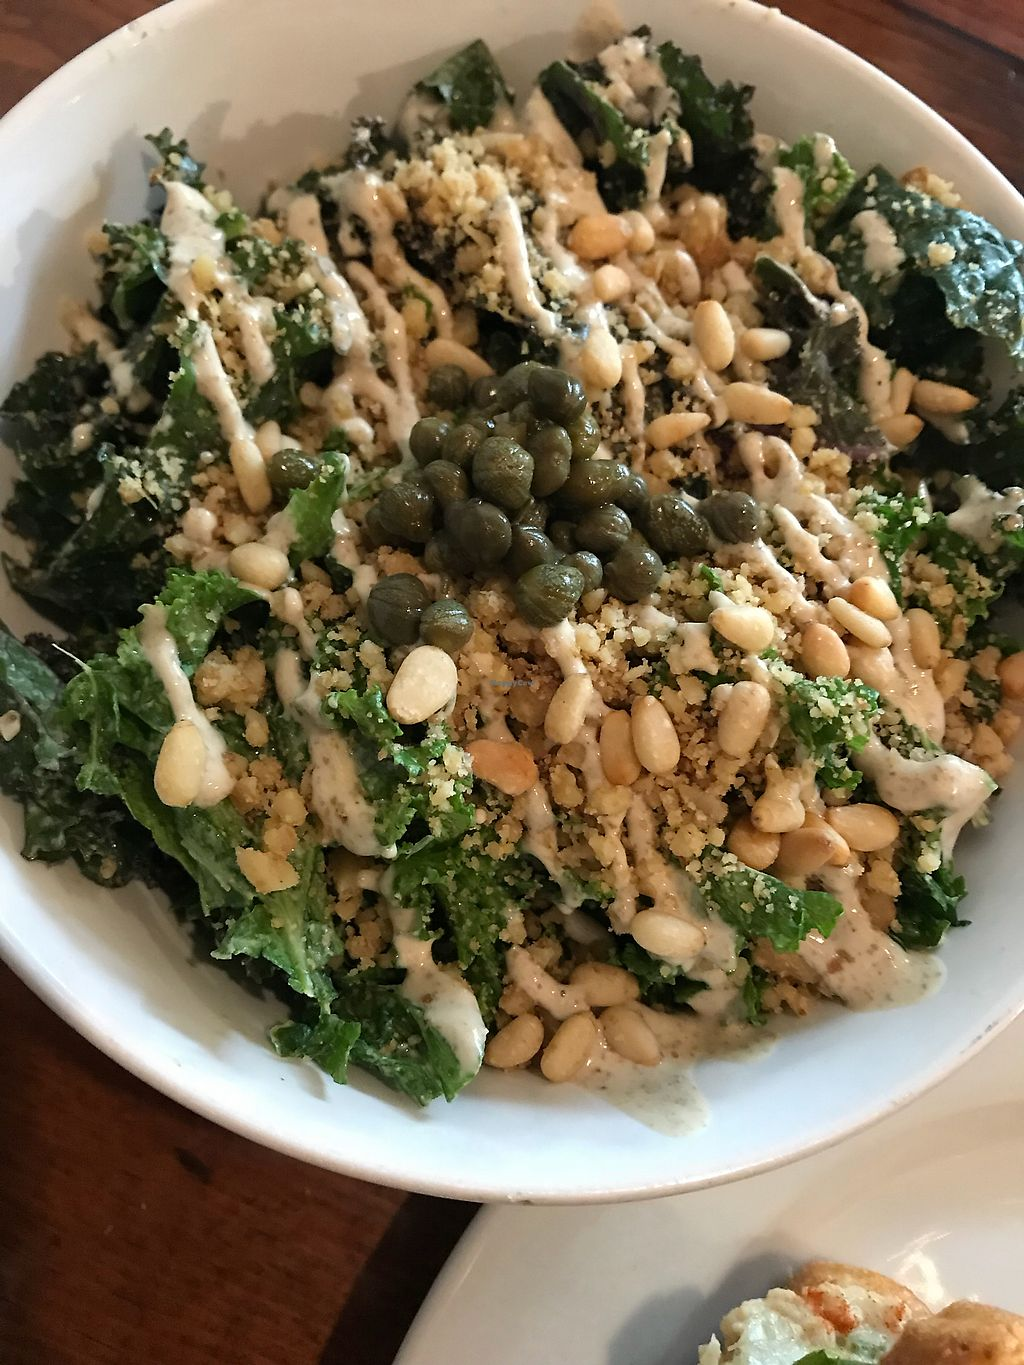 """Photo of Love Food Central  by <a href=""""/members/profile/katiakanner"""">katiakanner</a> <br/>incredible kale salad❤️ <br/> March 16, 2018  - <a href='/contact/abuse/image/69177/371231'>Report</a>"""